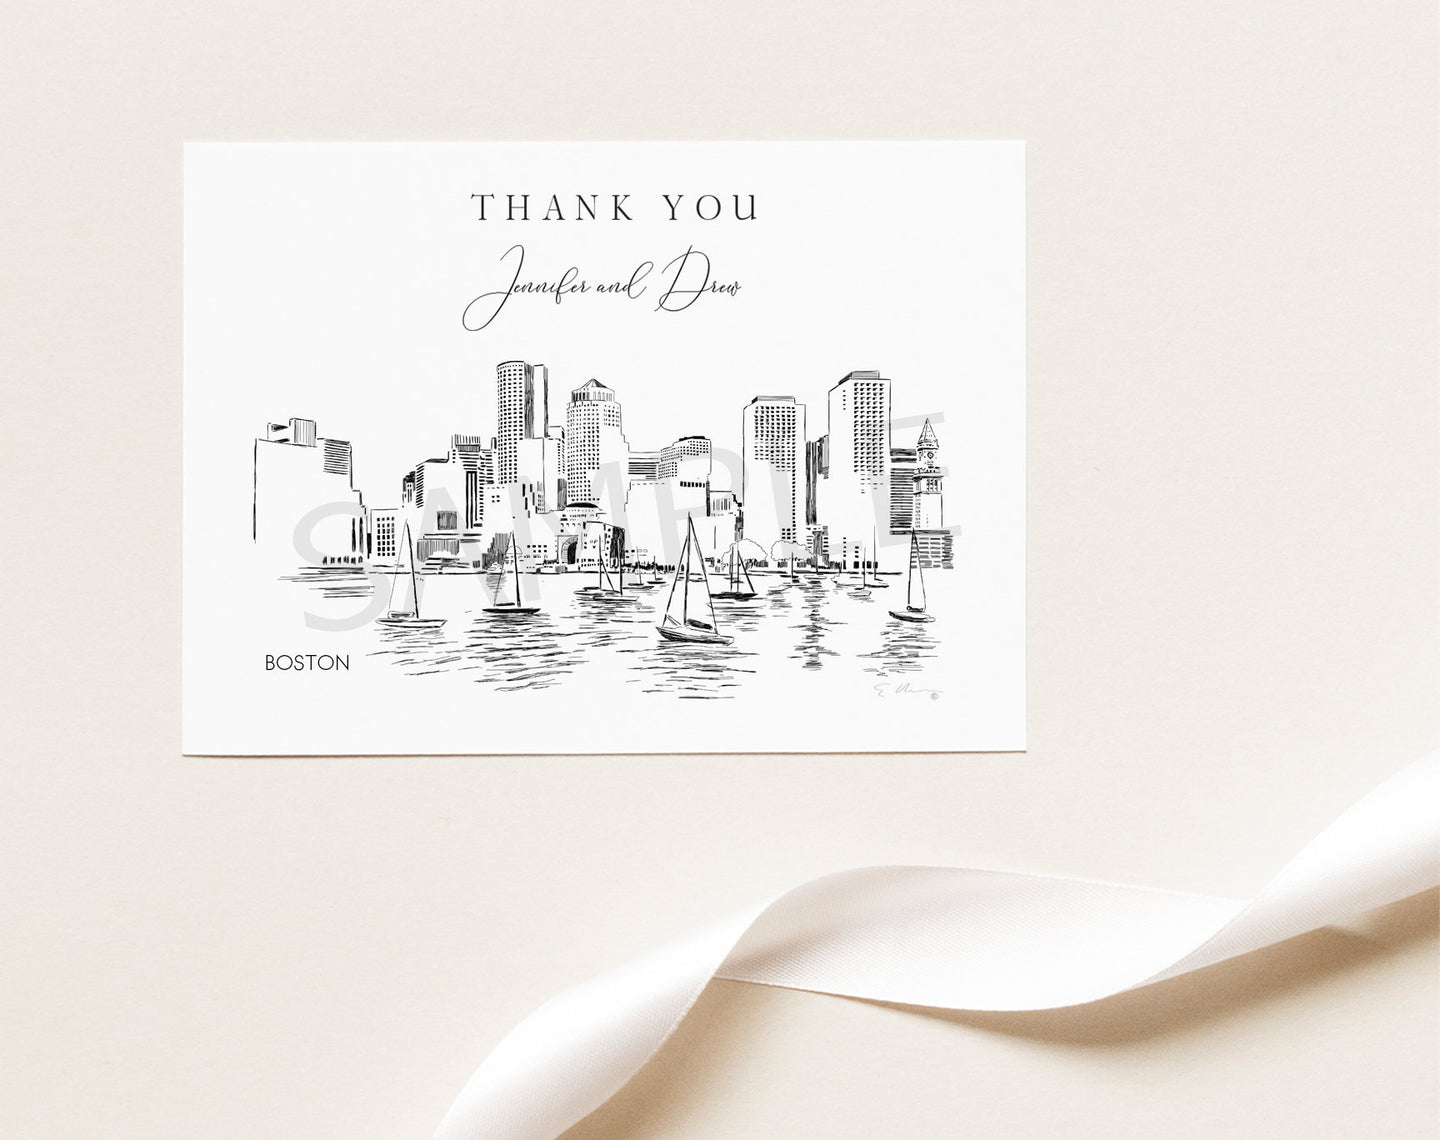 Boston Skyline Thank You Cards, Personal Note Cards, Bridal Shower, Real Estate Agent, Corporate Thank you Cards (set of 25 cards)